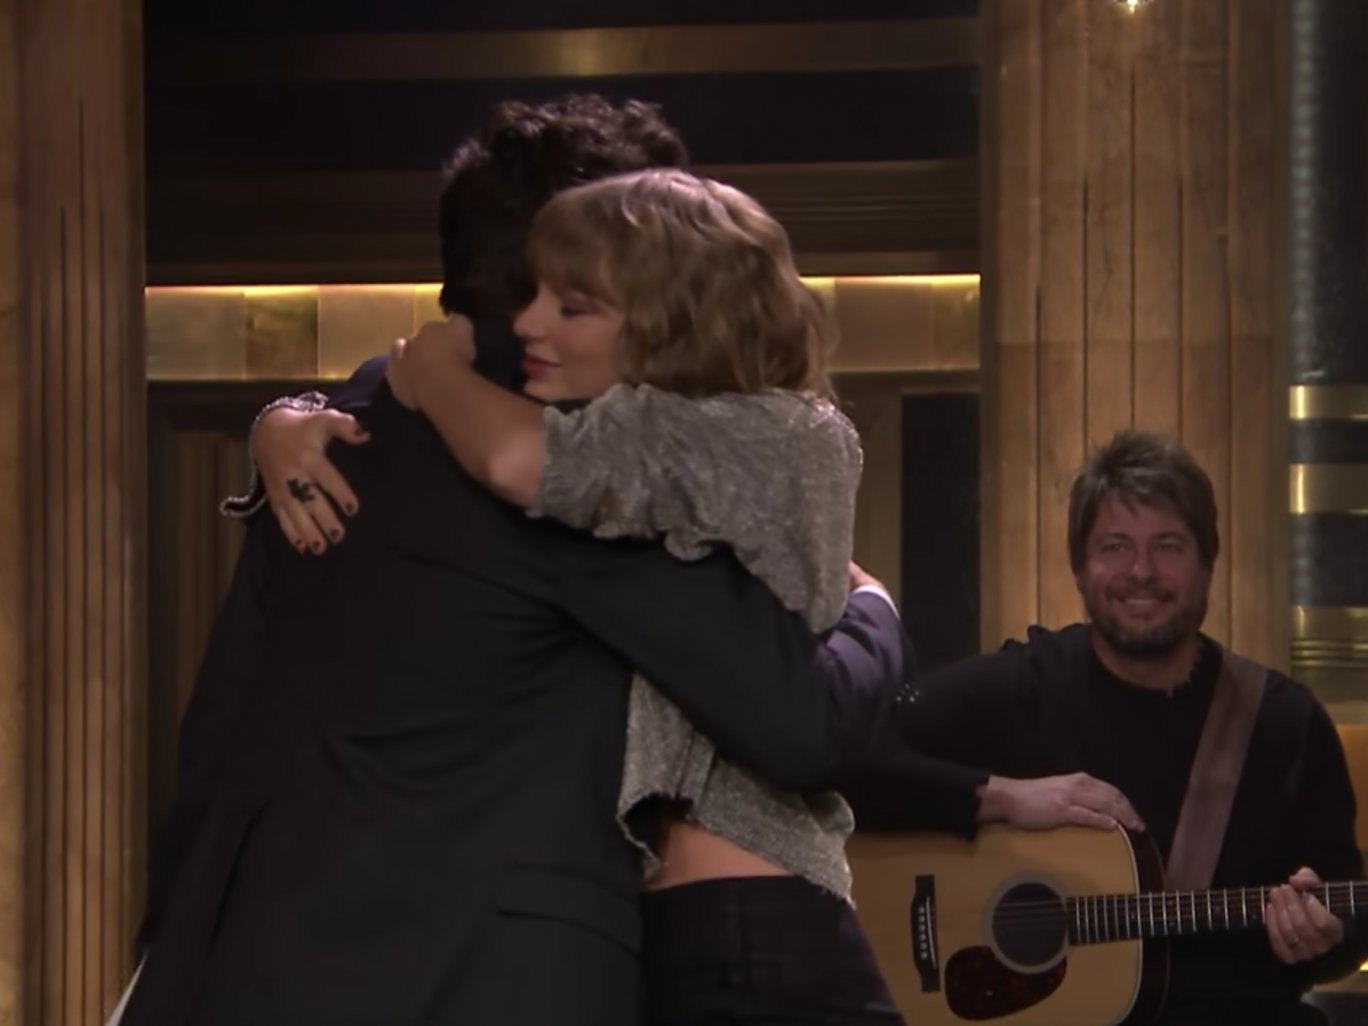 Taylor Swift's subtle, heartbreaking tribute on Jimmy Fallon has gone viral https://t.co/NOPkbRYymE https://t.co/FPzW2I17FZ